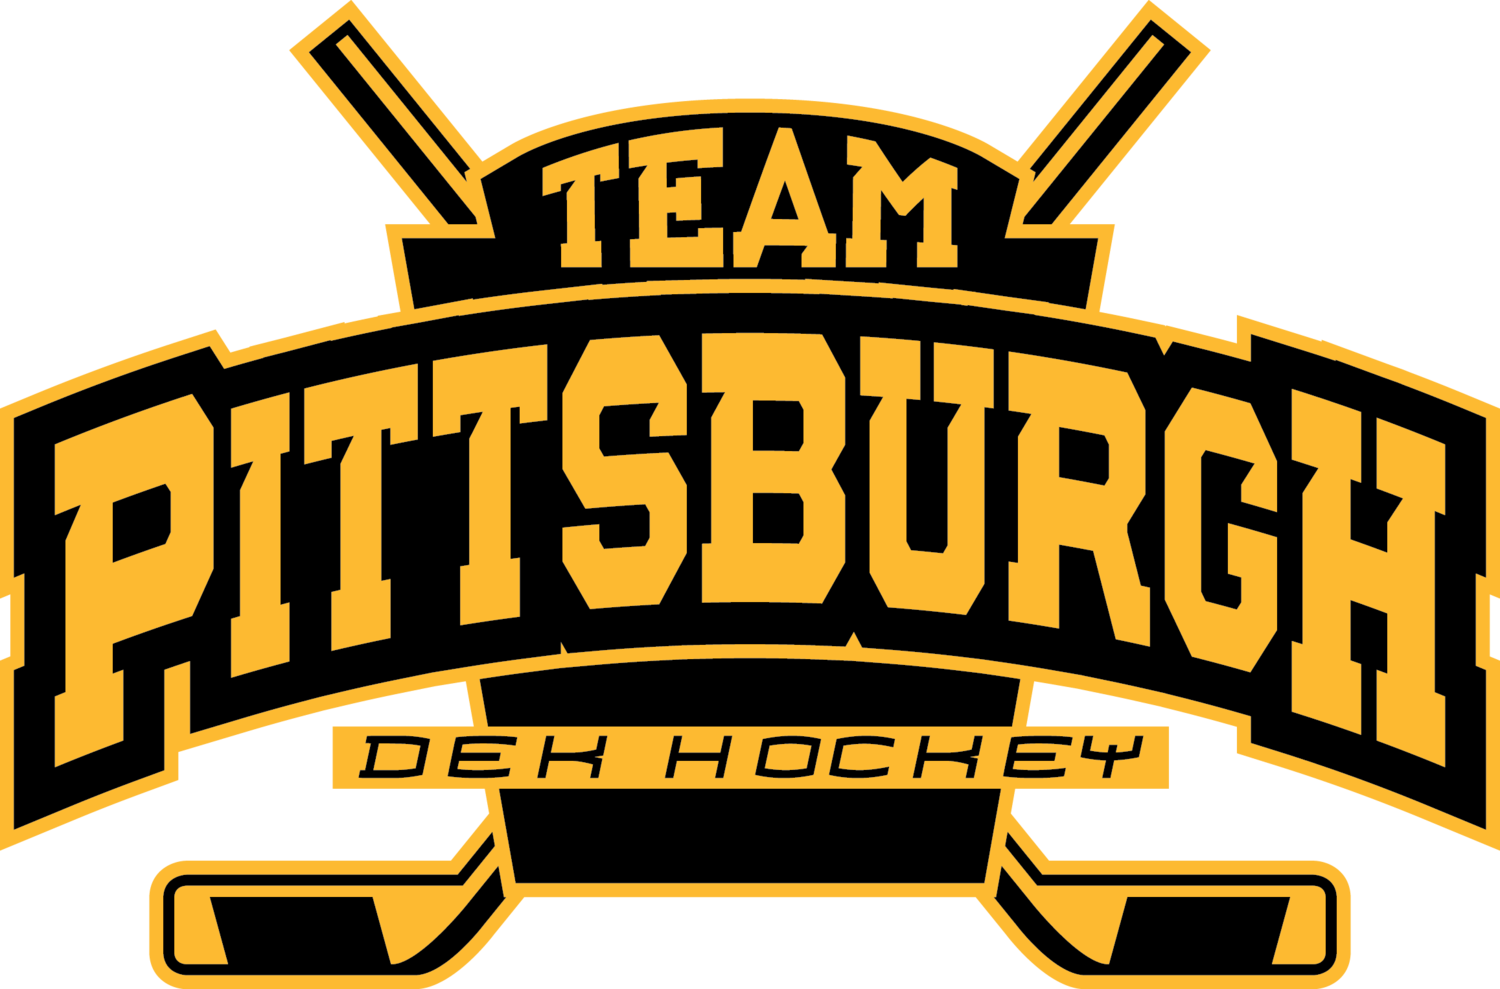 TEAM PITTSBURGH DEK HOCKEY